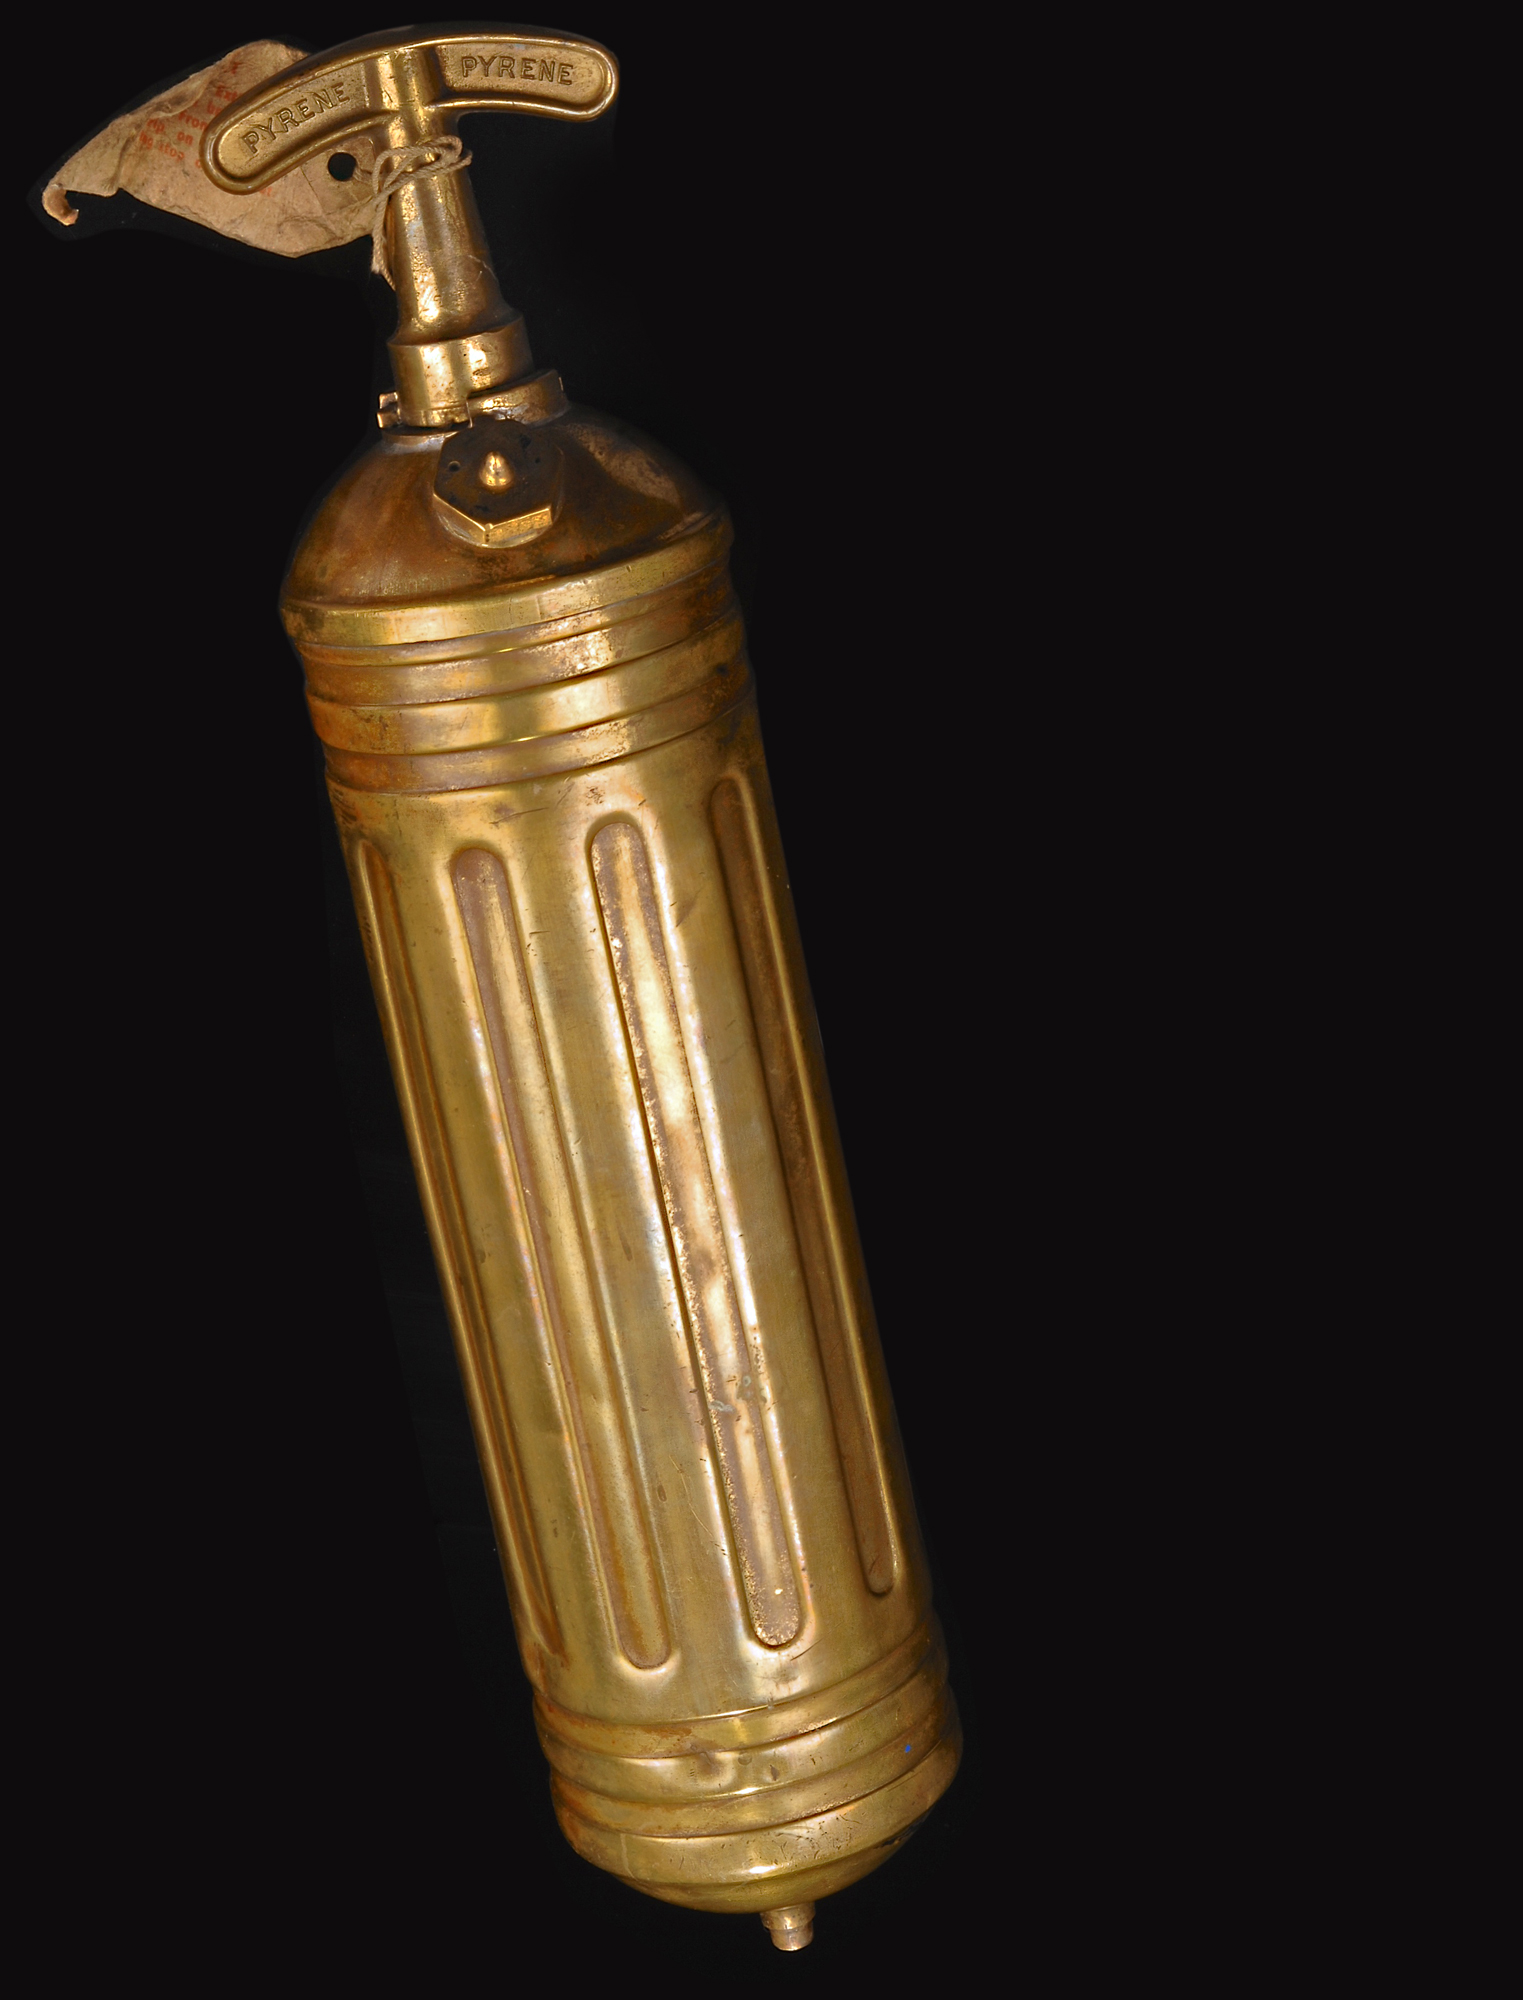 Vintage Brass Pyrene pump-action domestic fire extinguisher